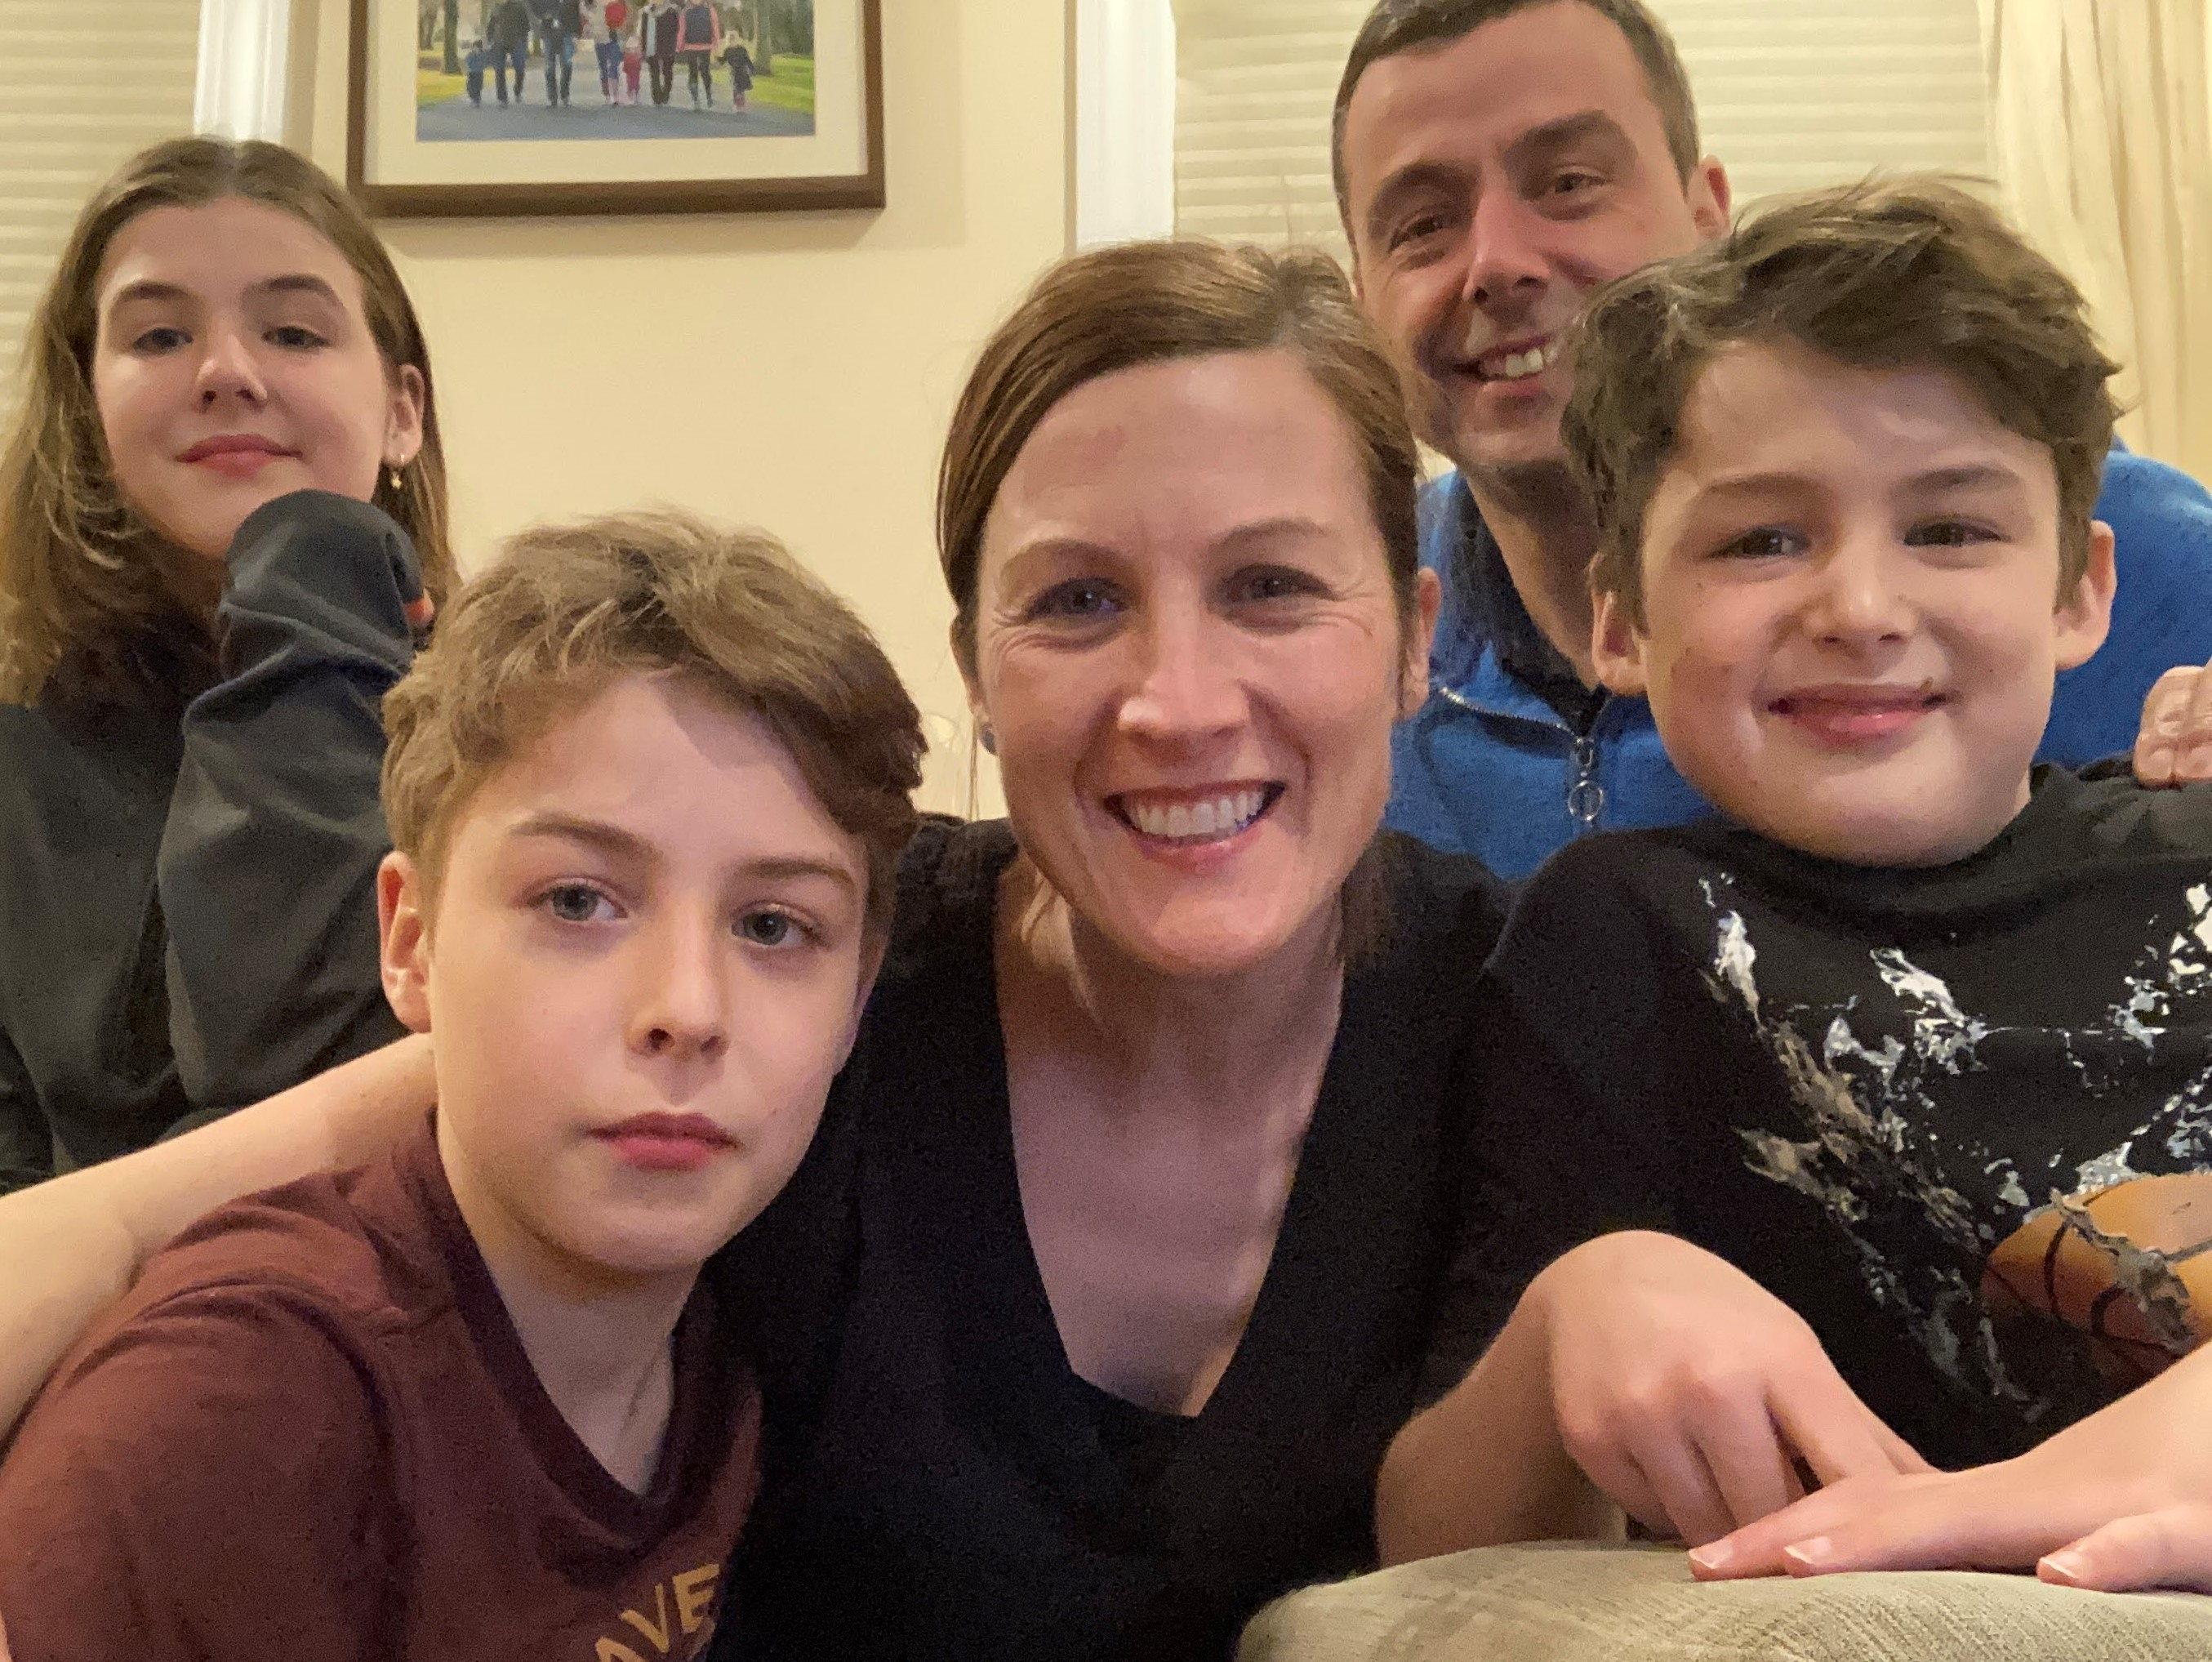 Photo of Felicity Beal with her family members